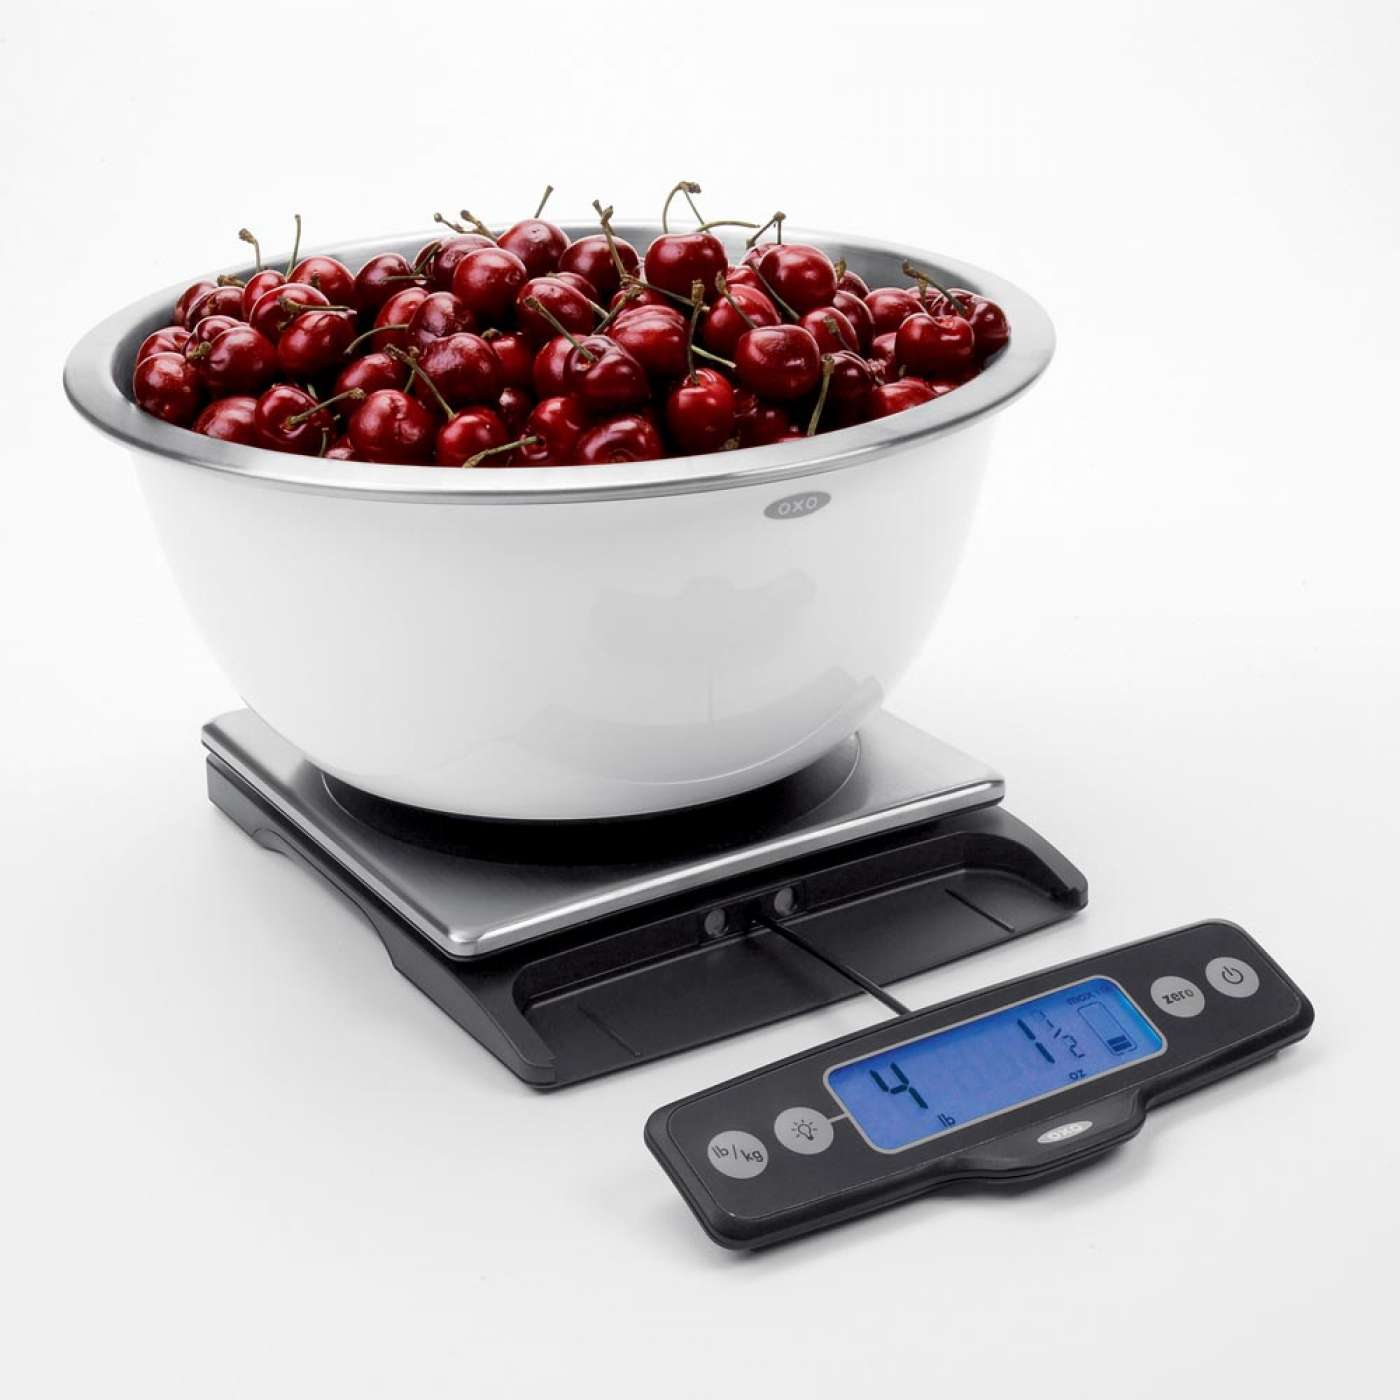 OXO Good Grips Stainless Steel Food Scale with Pull-Out Display, 11 ...